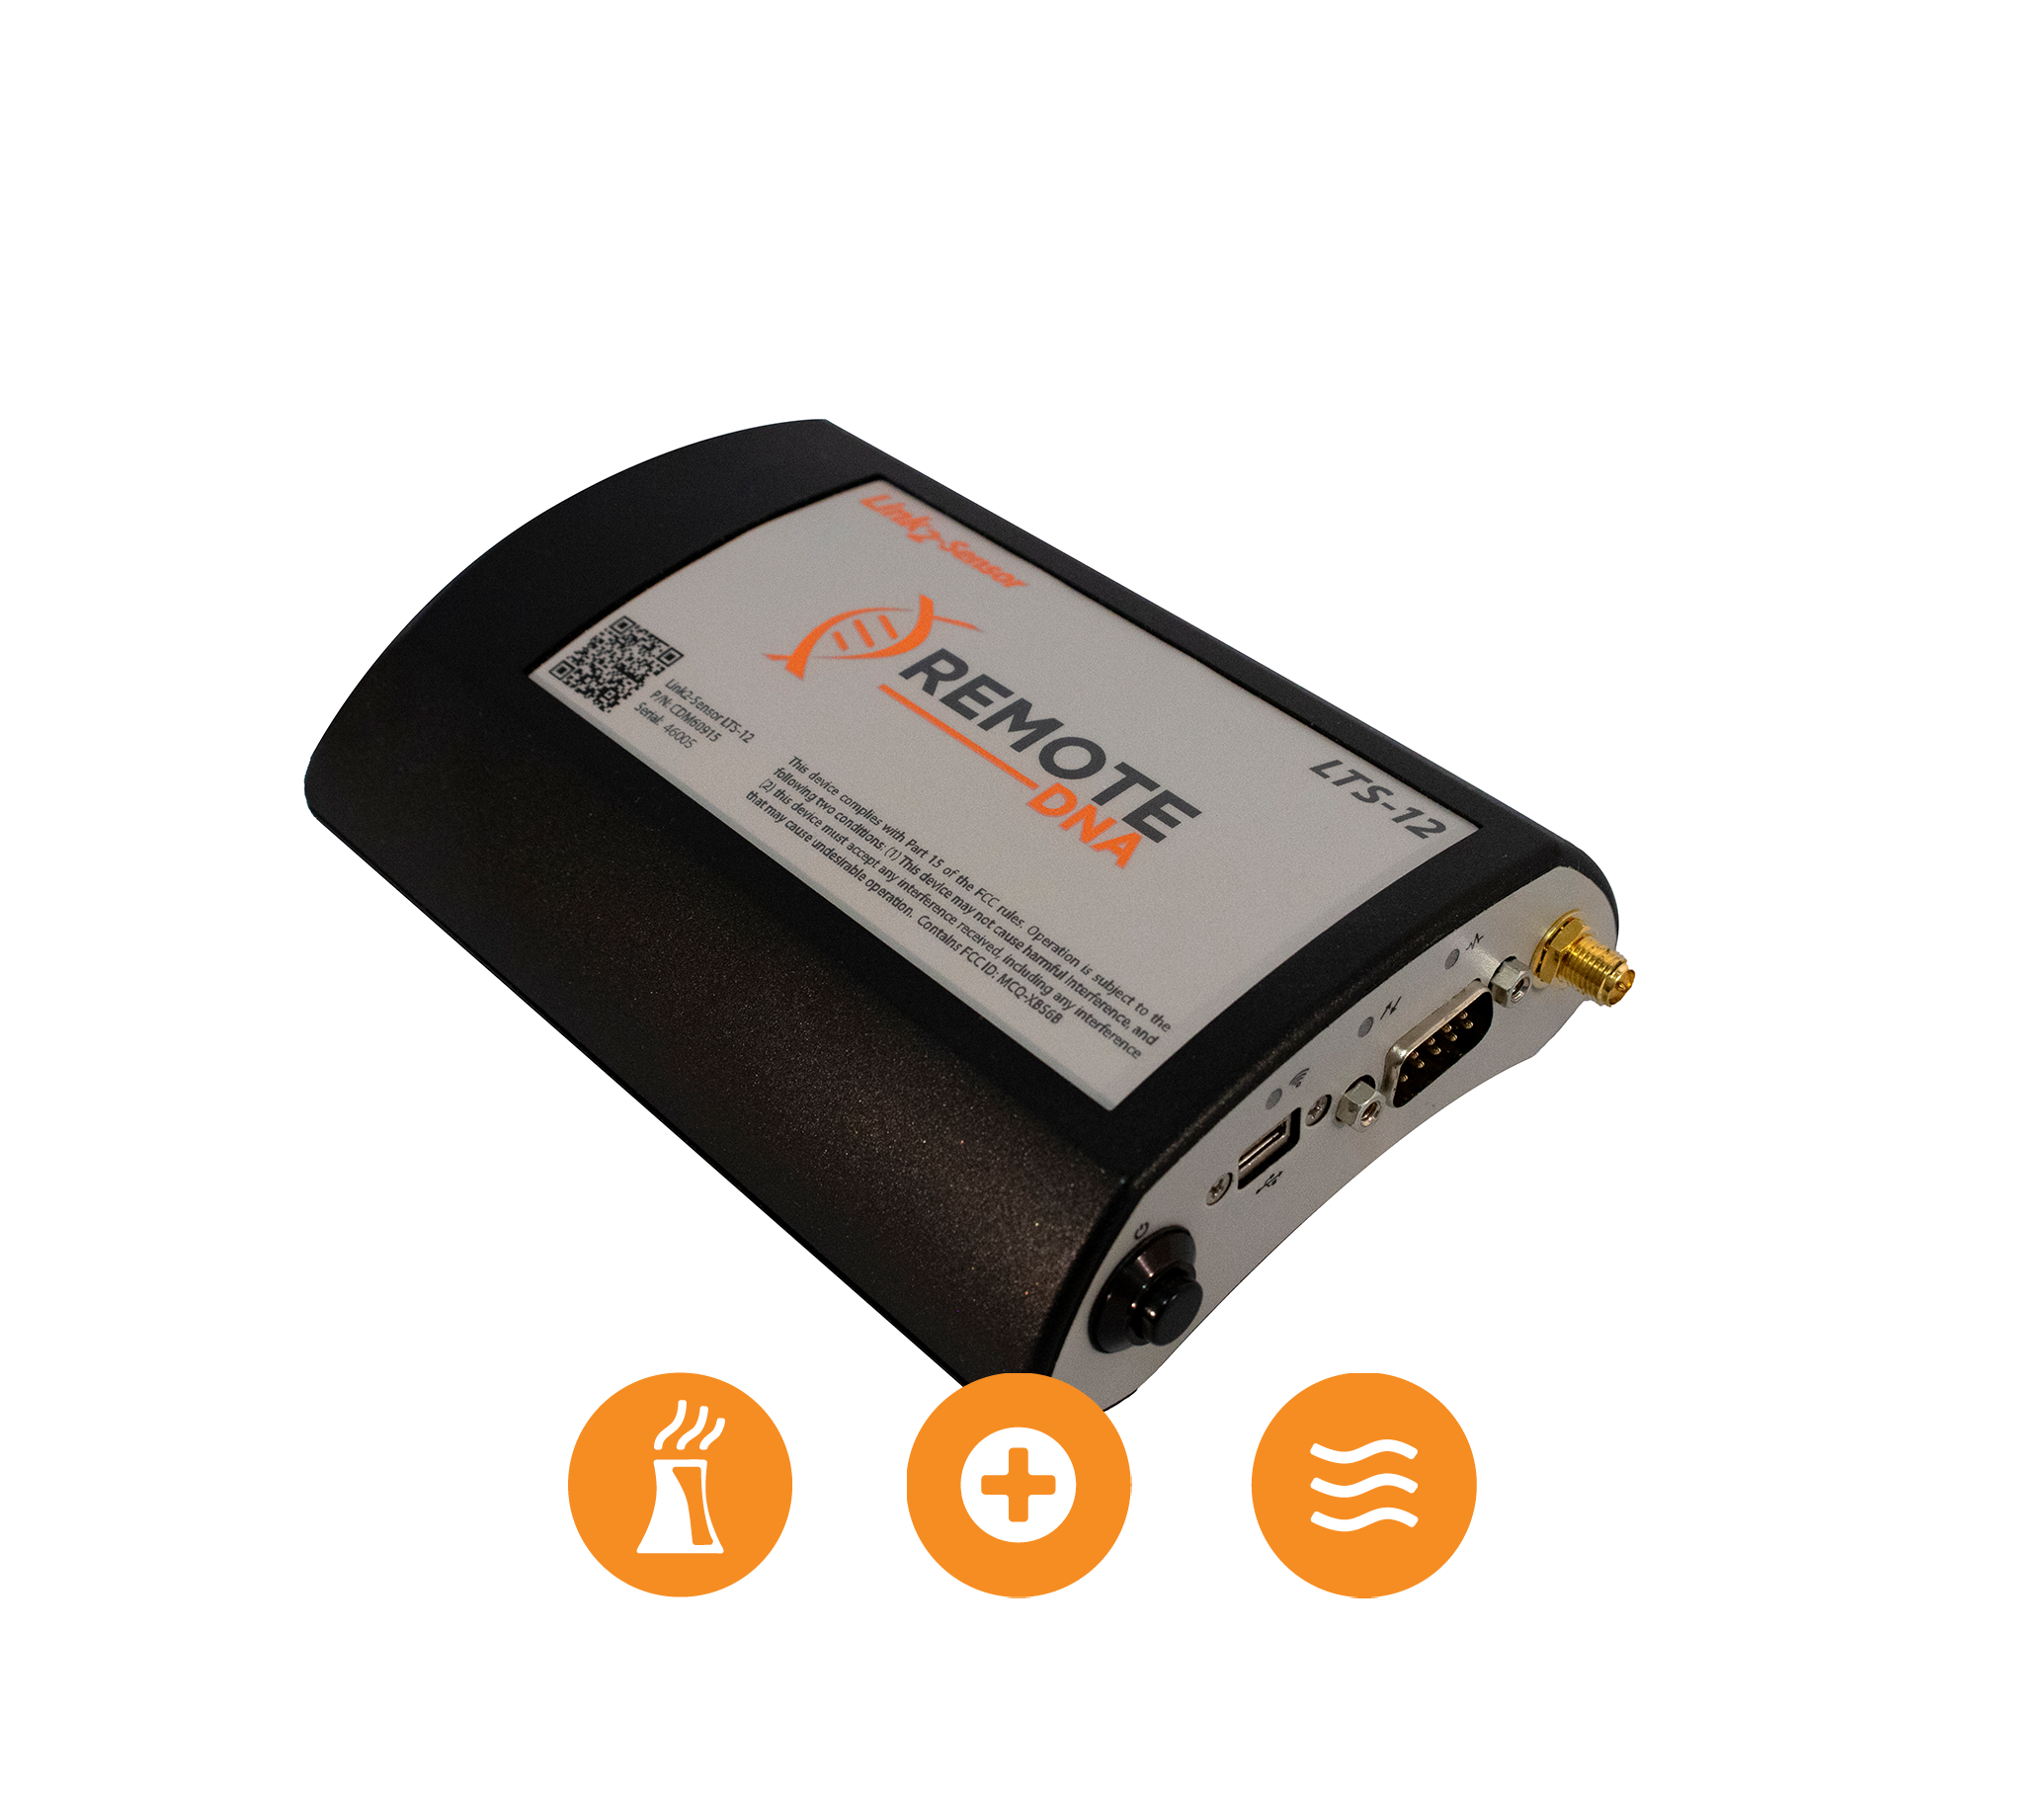 LTS-12 - The Link2 Sensor LTS-12 is a highly versatile radio transceiver providing long range 2.4GHz wireless connectivity to nearby Bluetooth LE and CNET Mesh devices. The LTS-12 also…